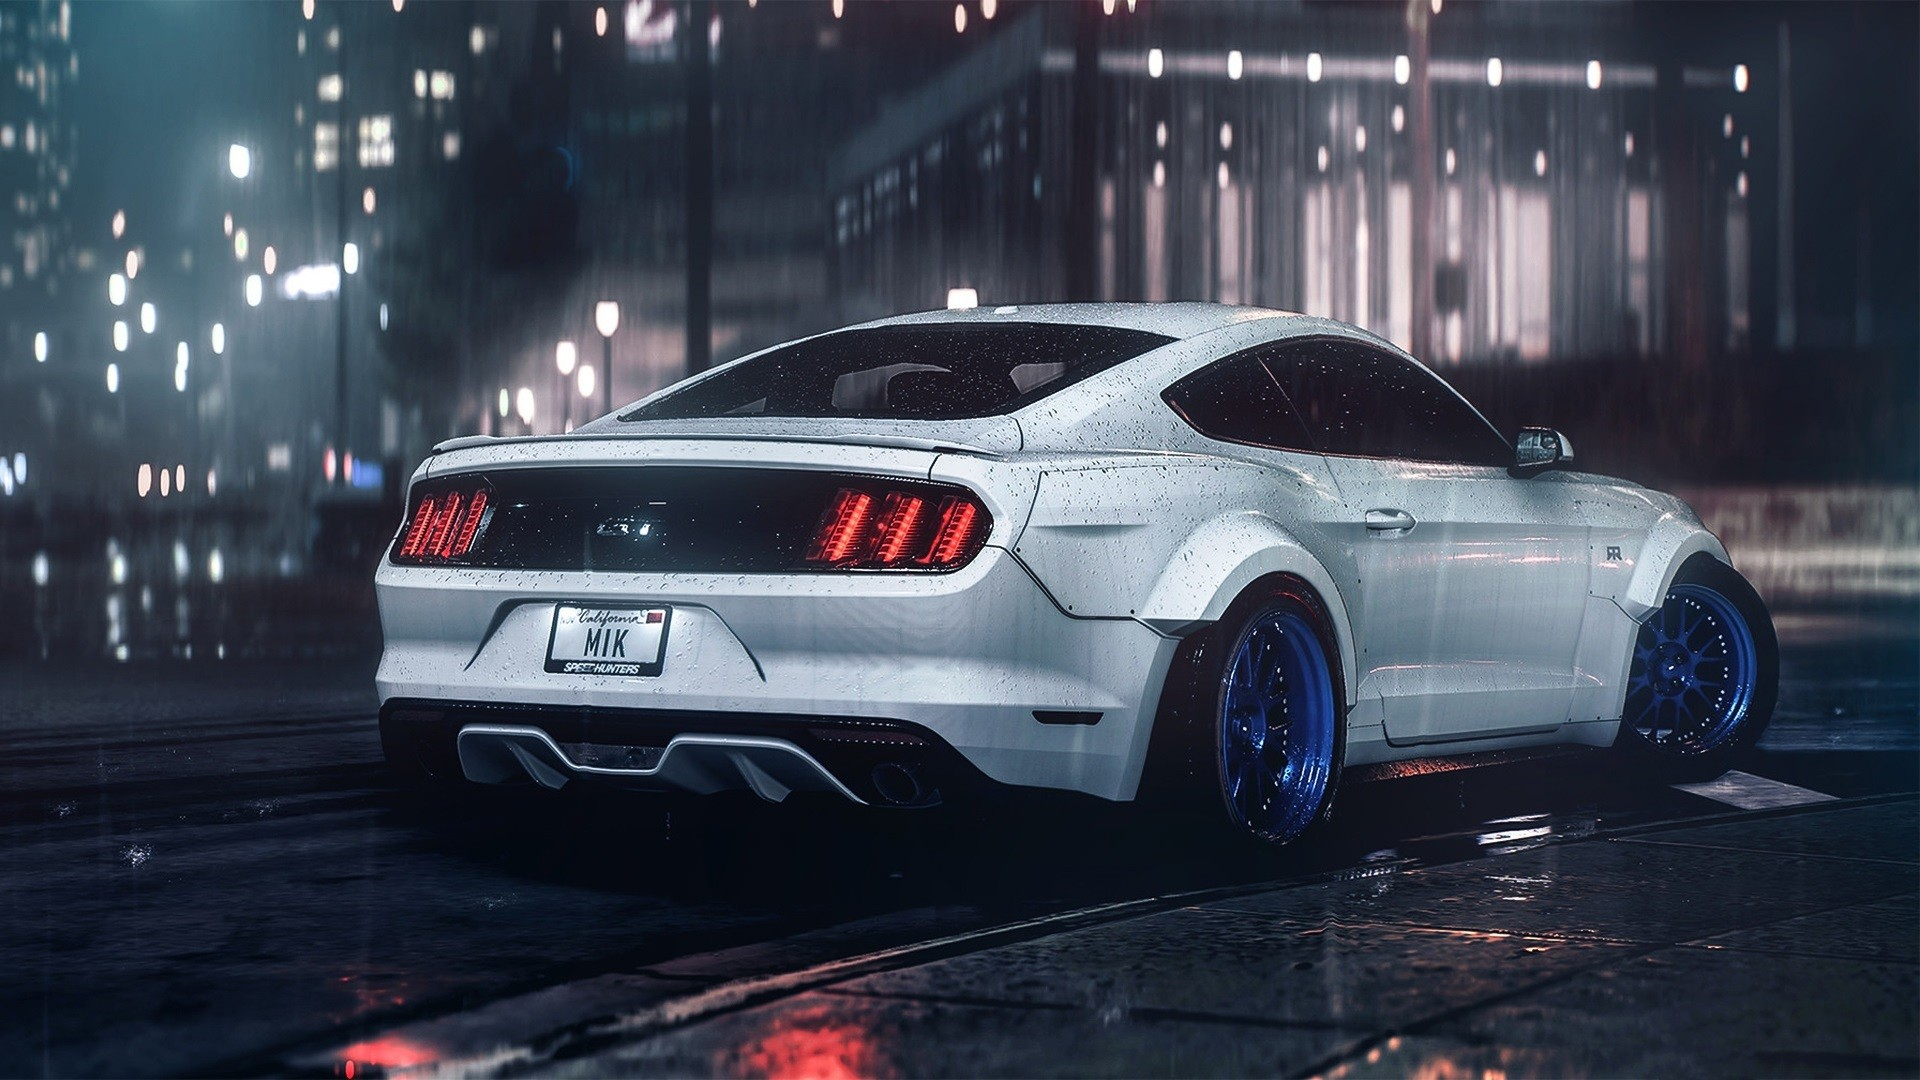 1920x1080 - Ford Mustang GT500 Wallpapers 11